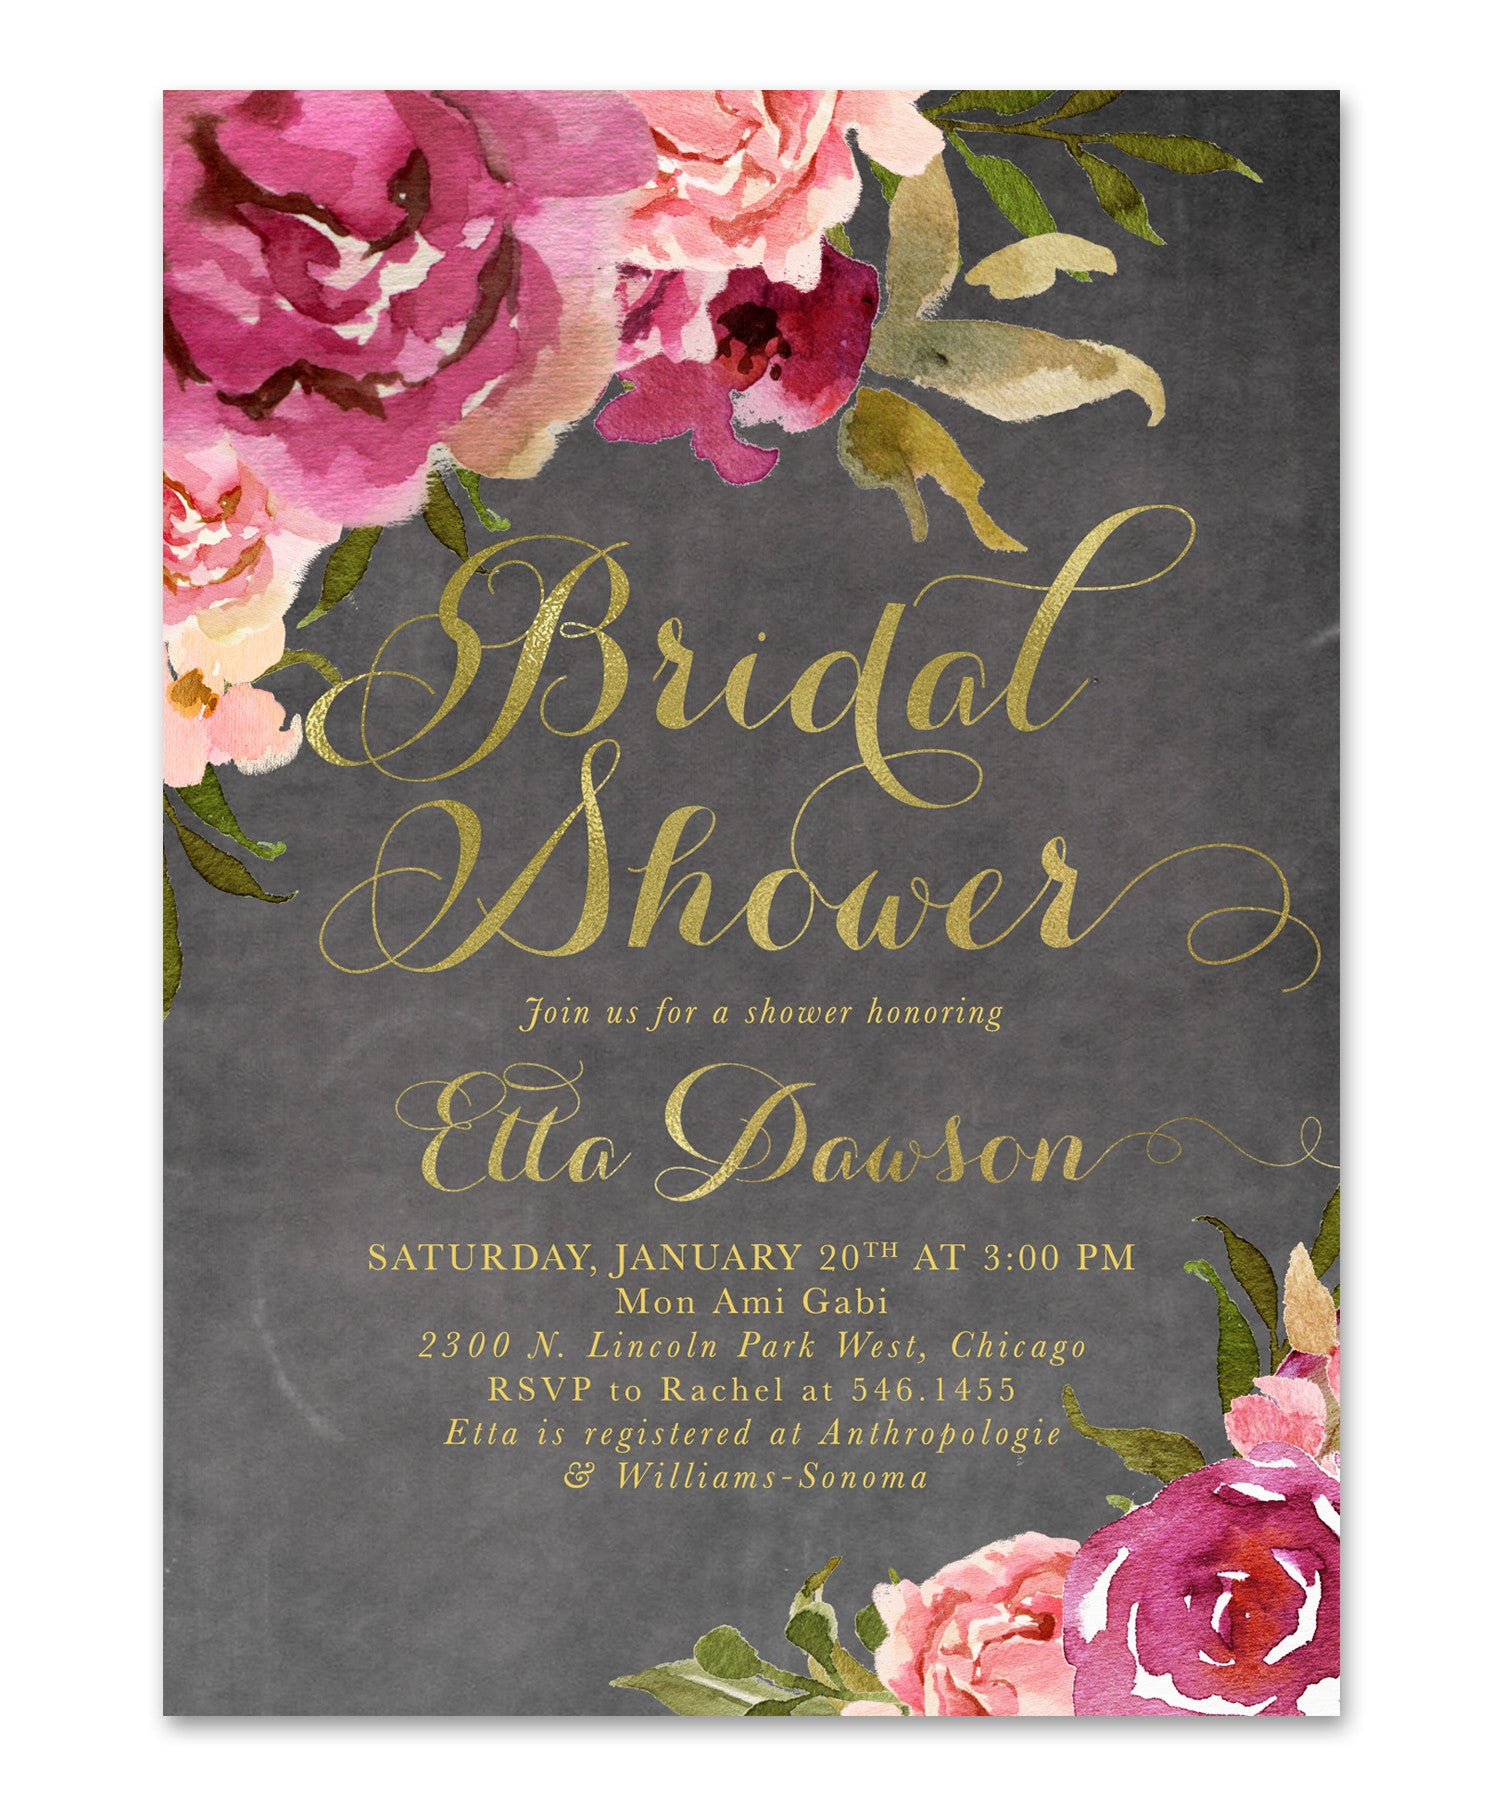 etta bridal shower invitation burgundy blush pink gold chalkboard floral